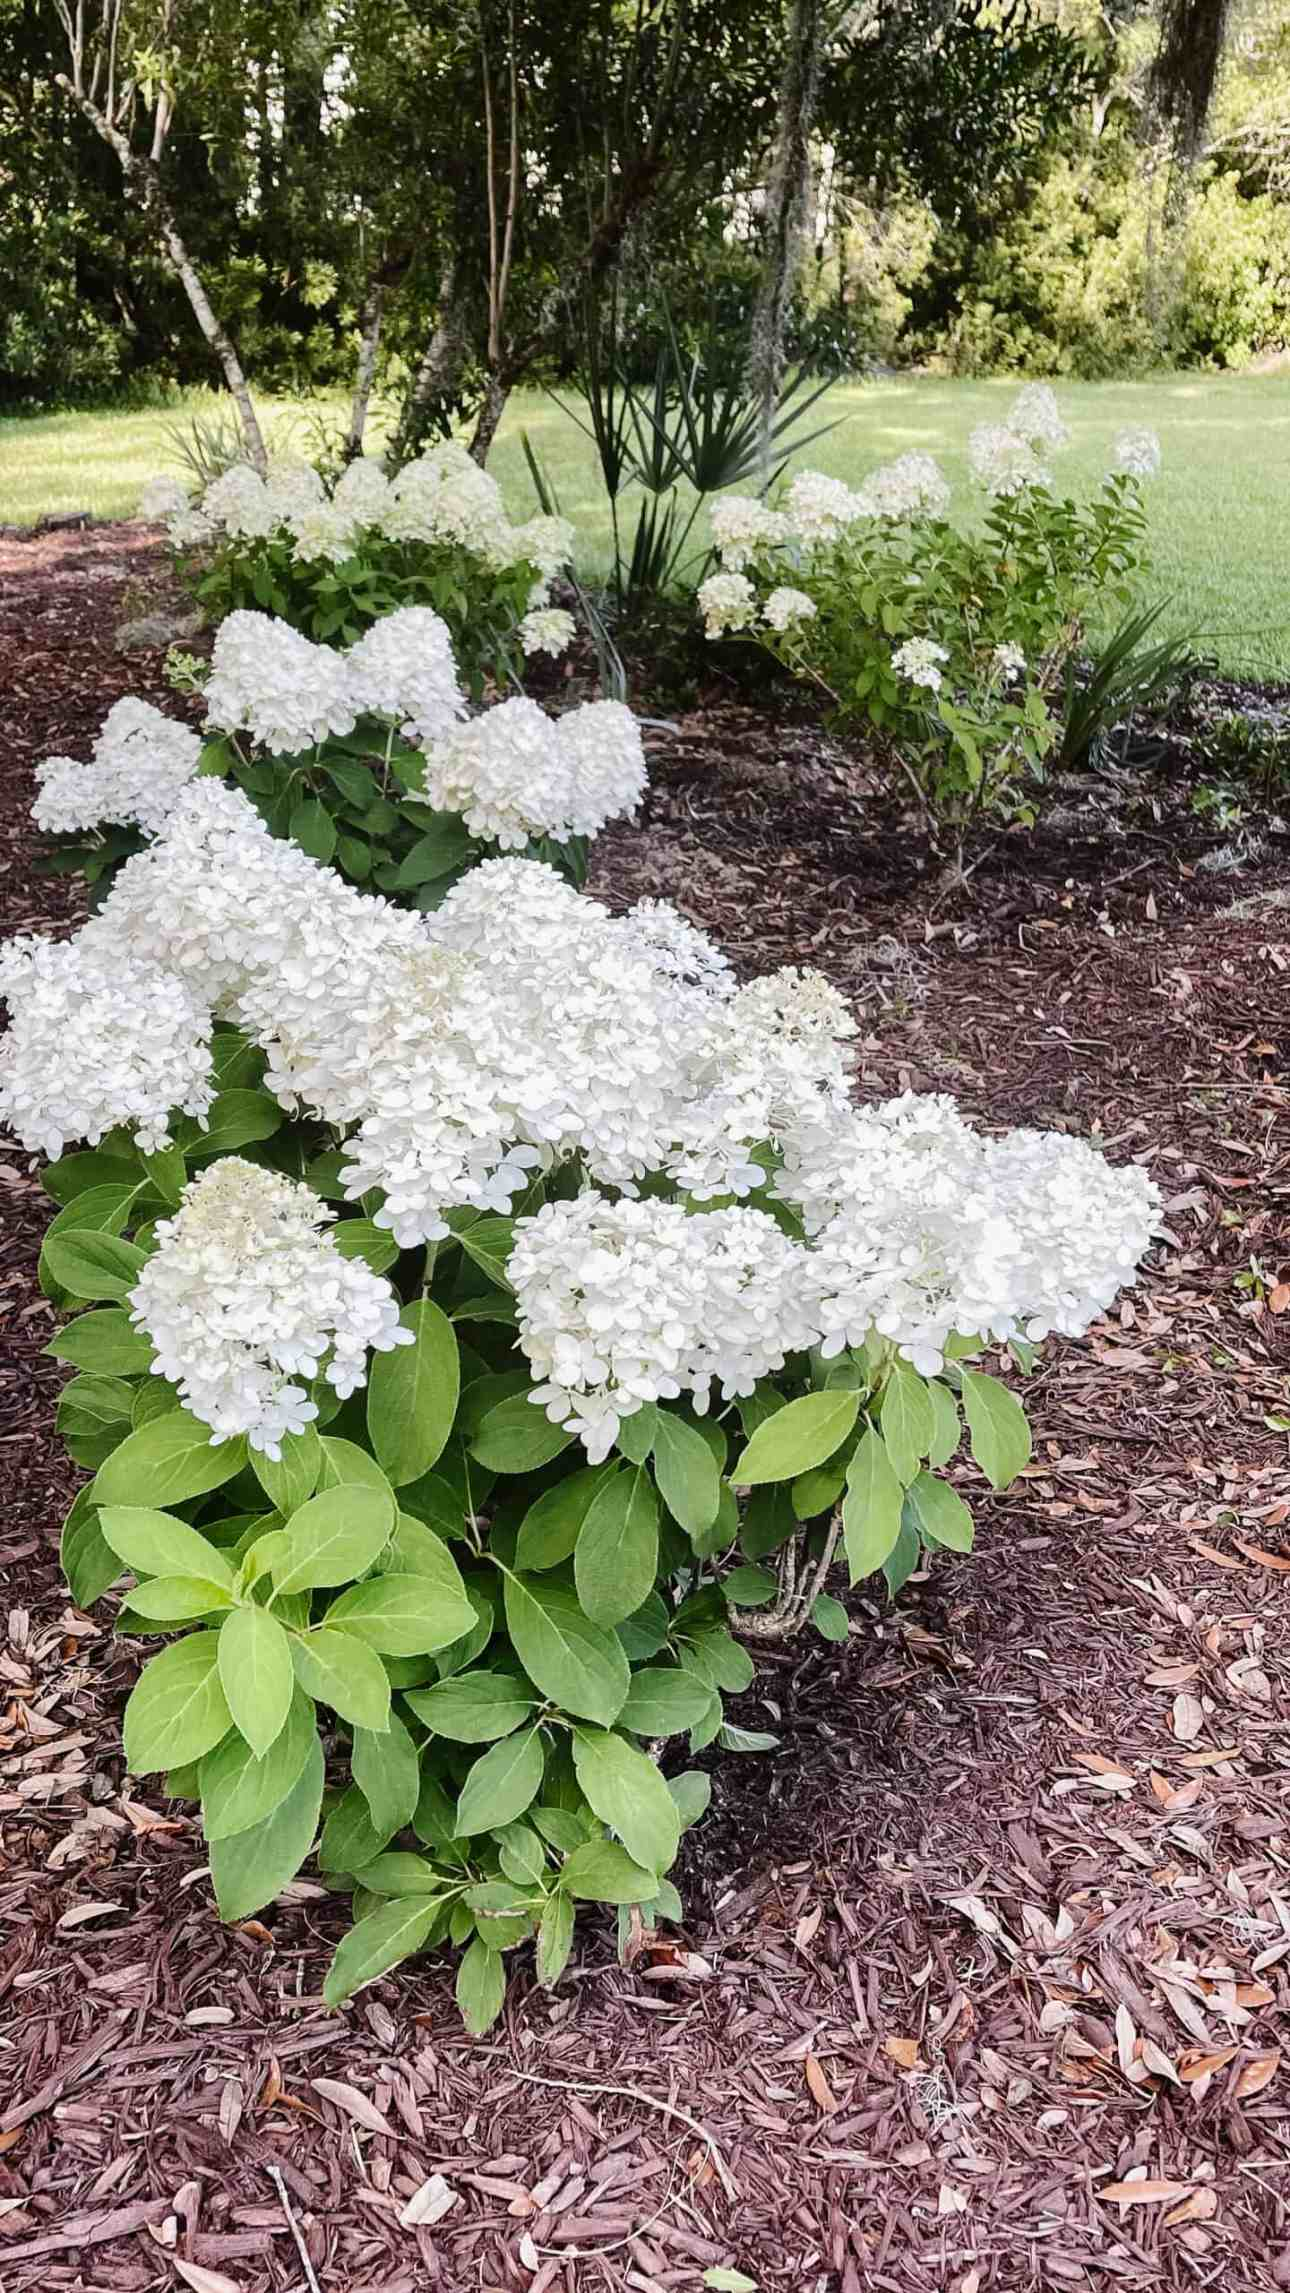 Sun loving hydrangeas, the panicle white wedding hydrangea from Southern Living Plant Collection.